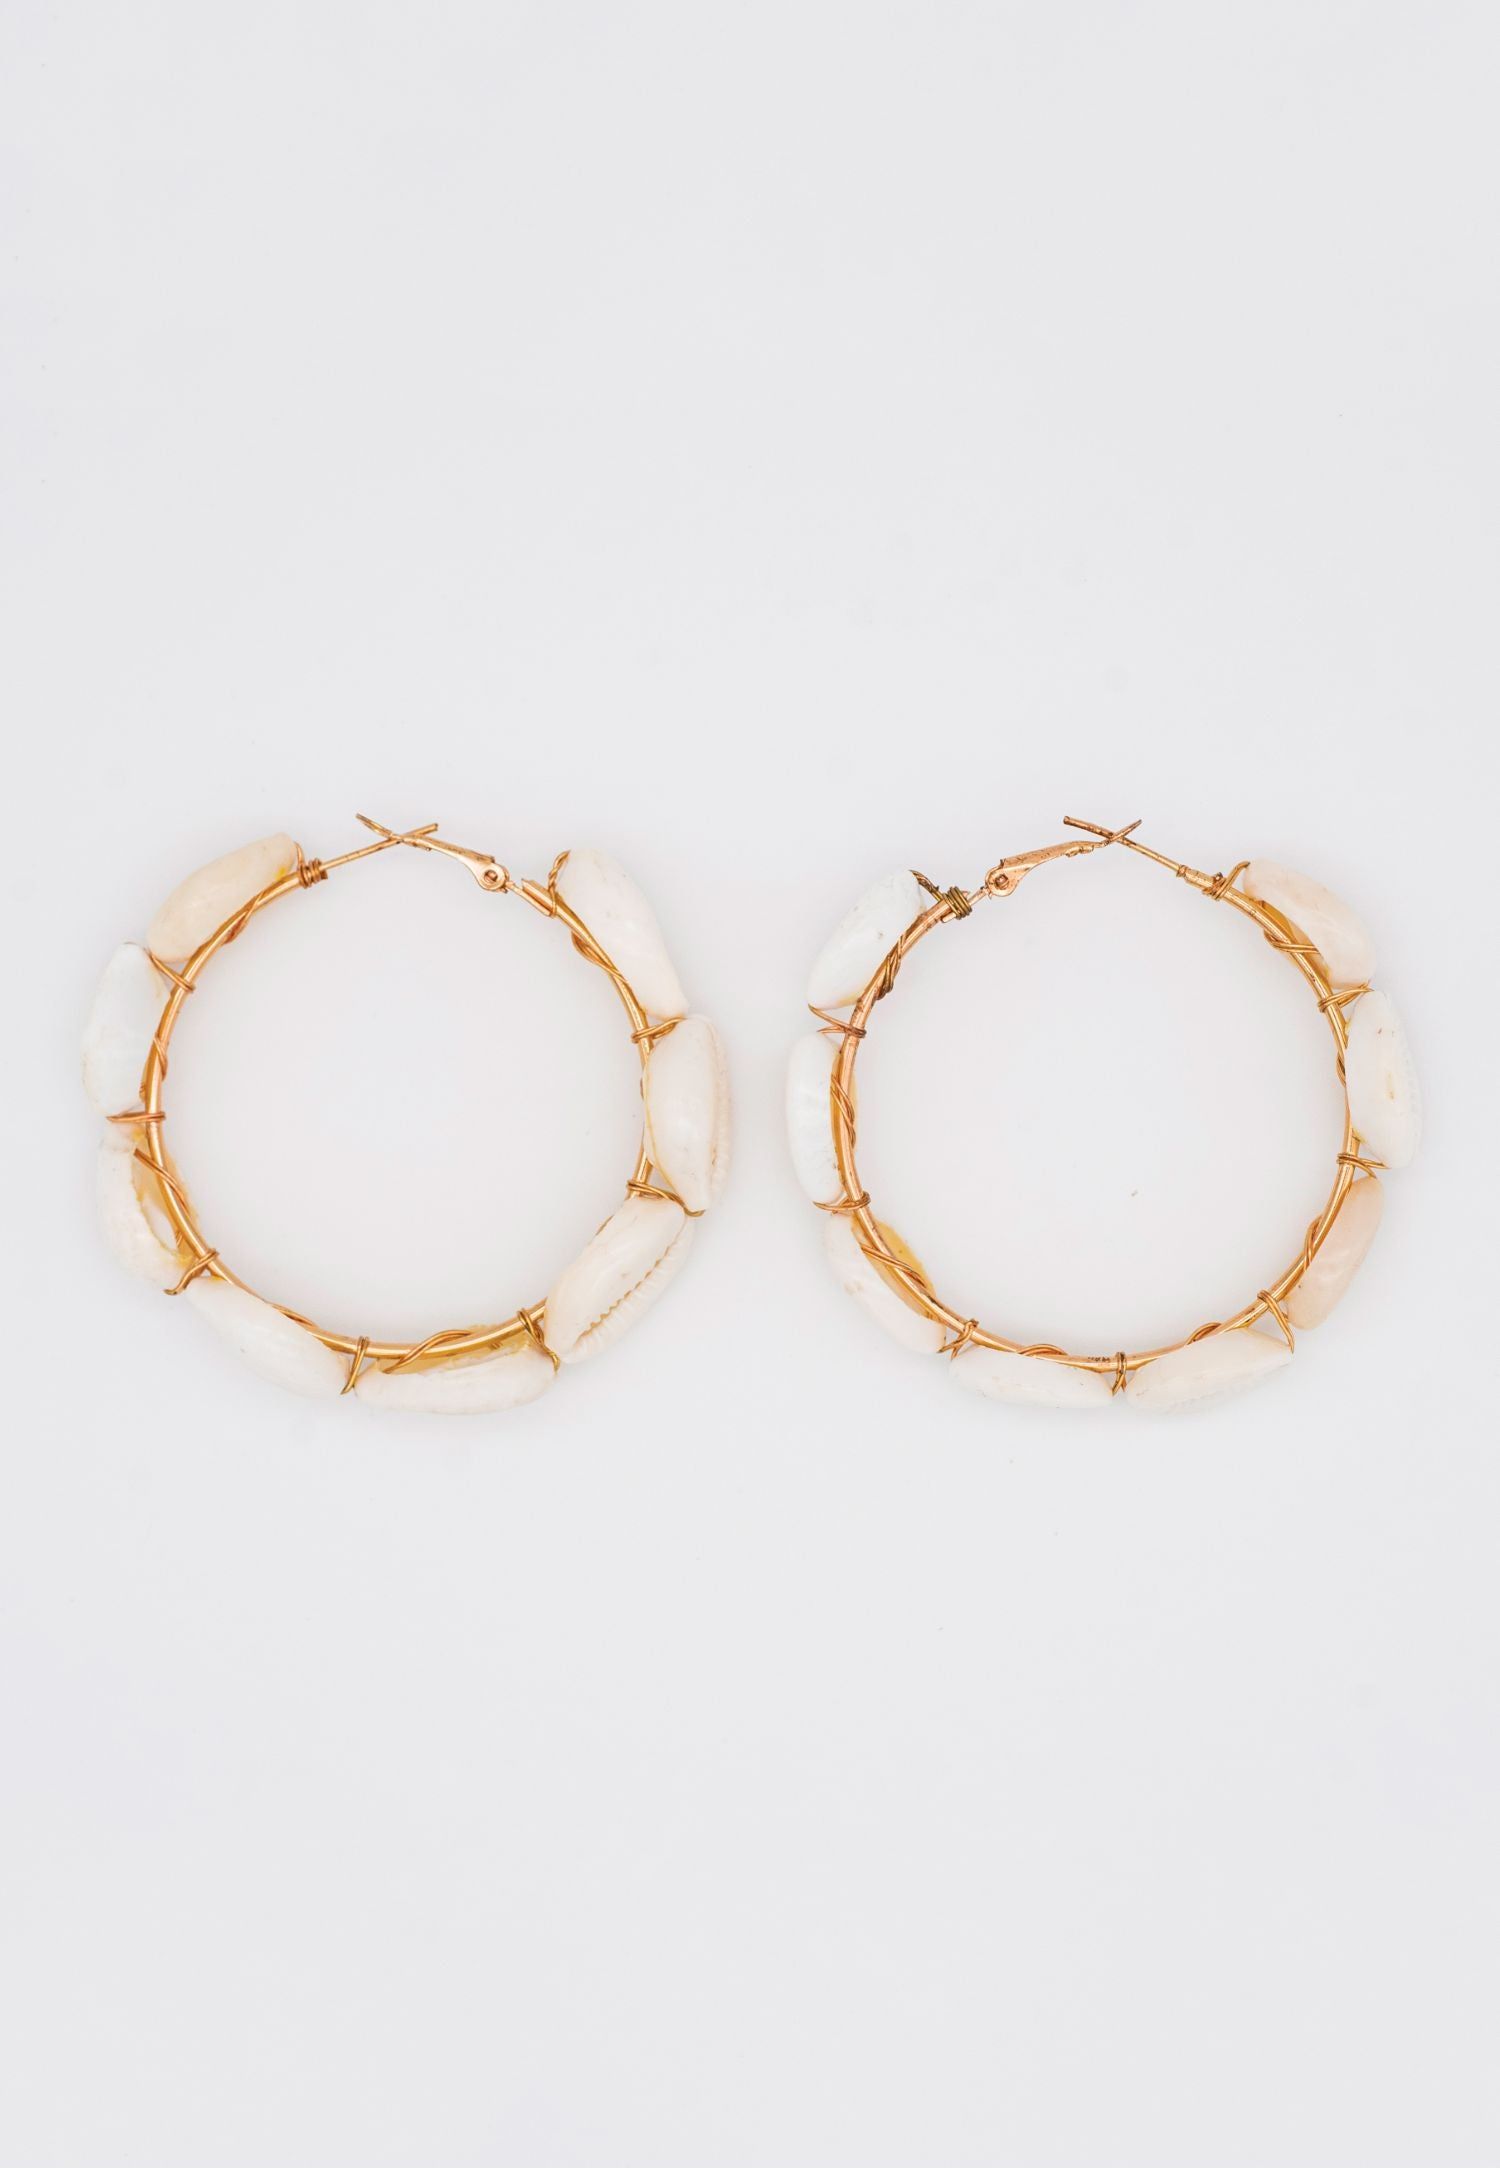 SEA SHELL HOOPS WITH CONCH SHELLS